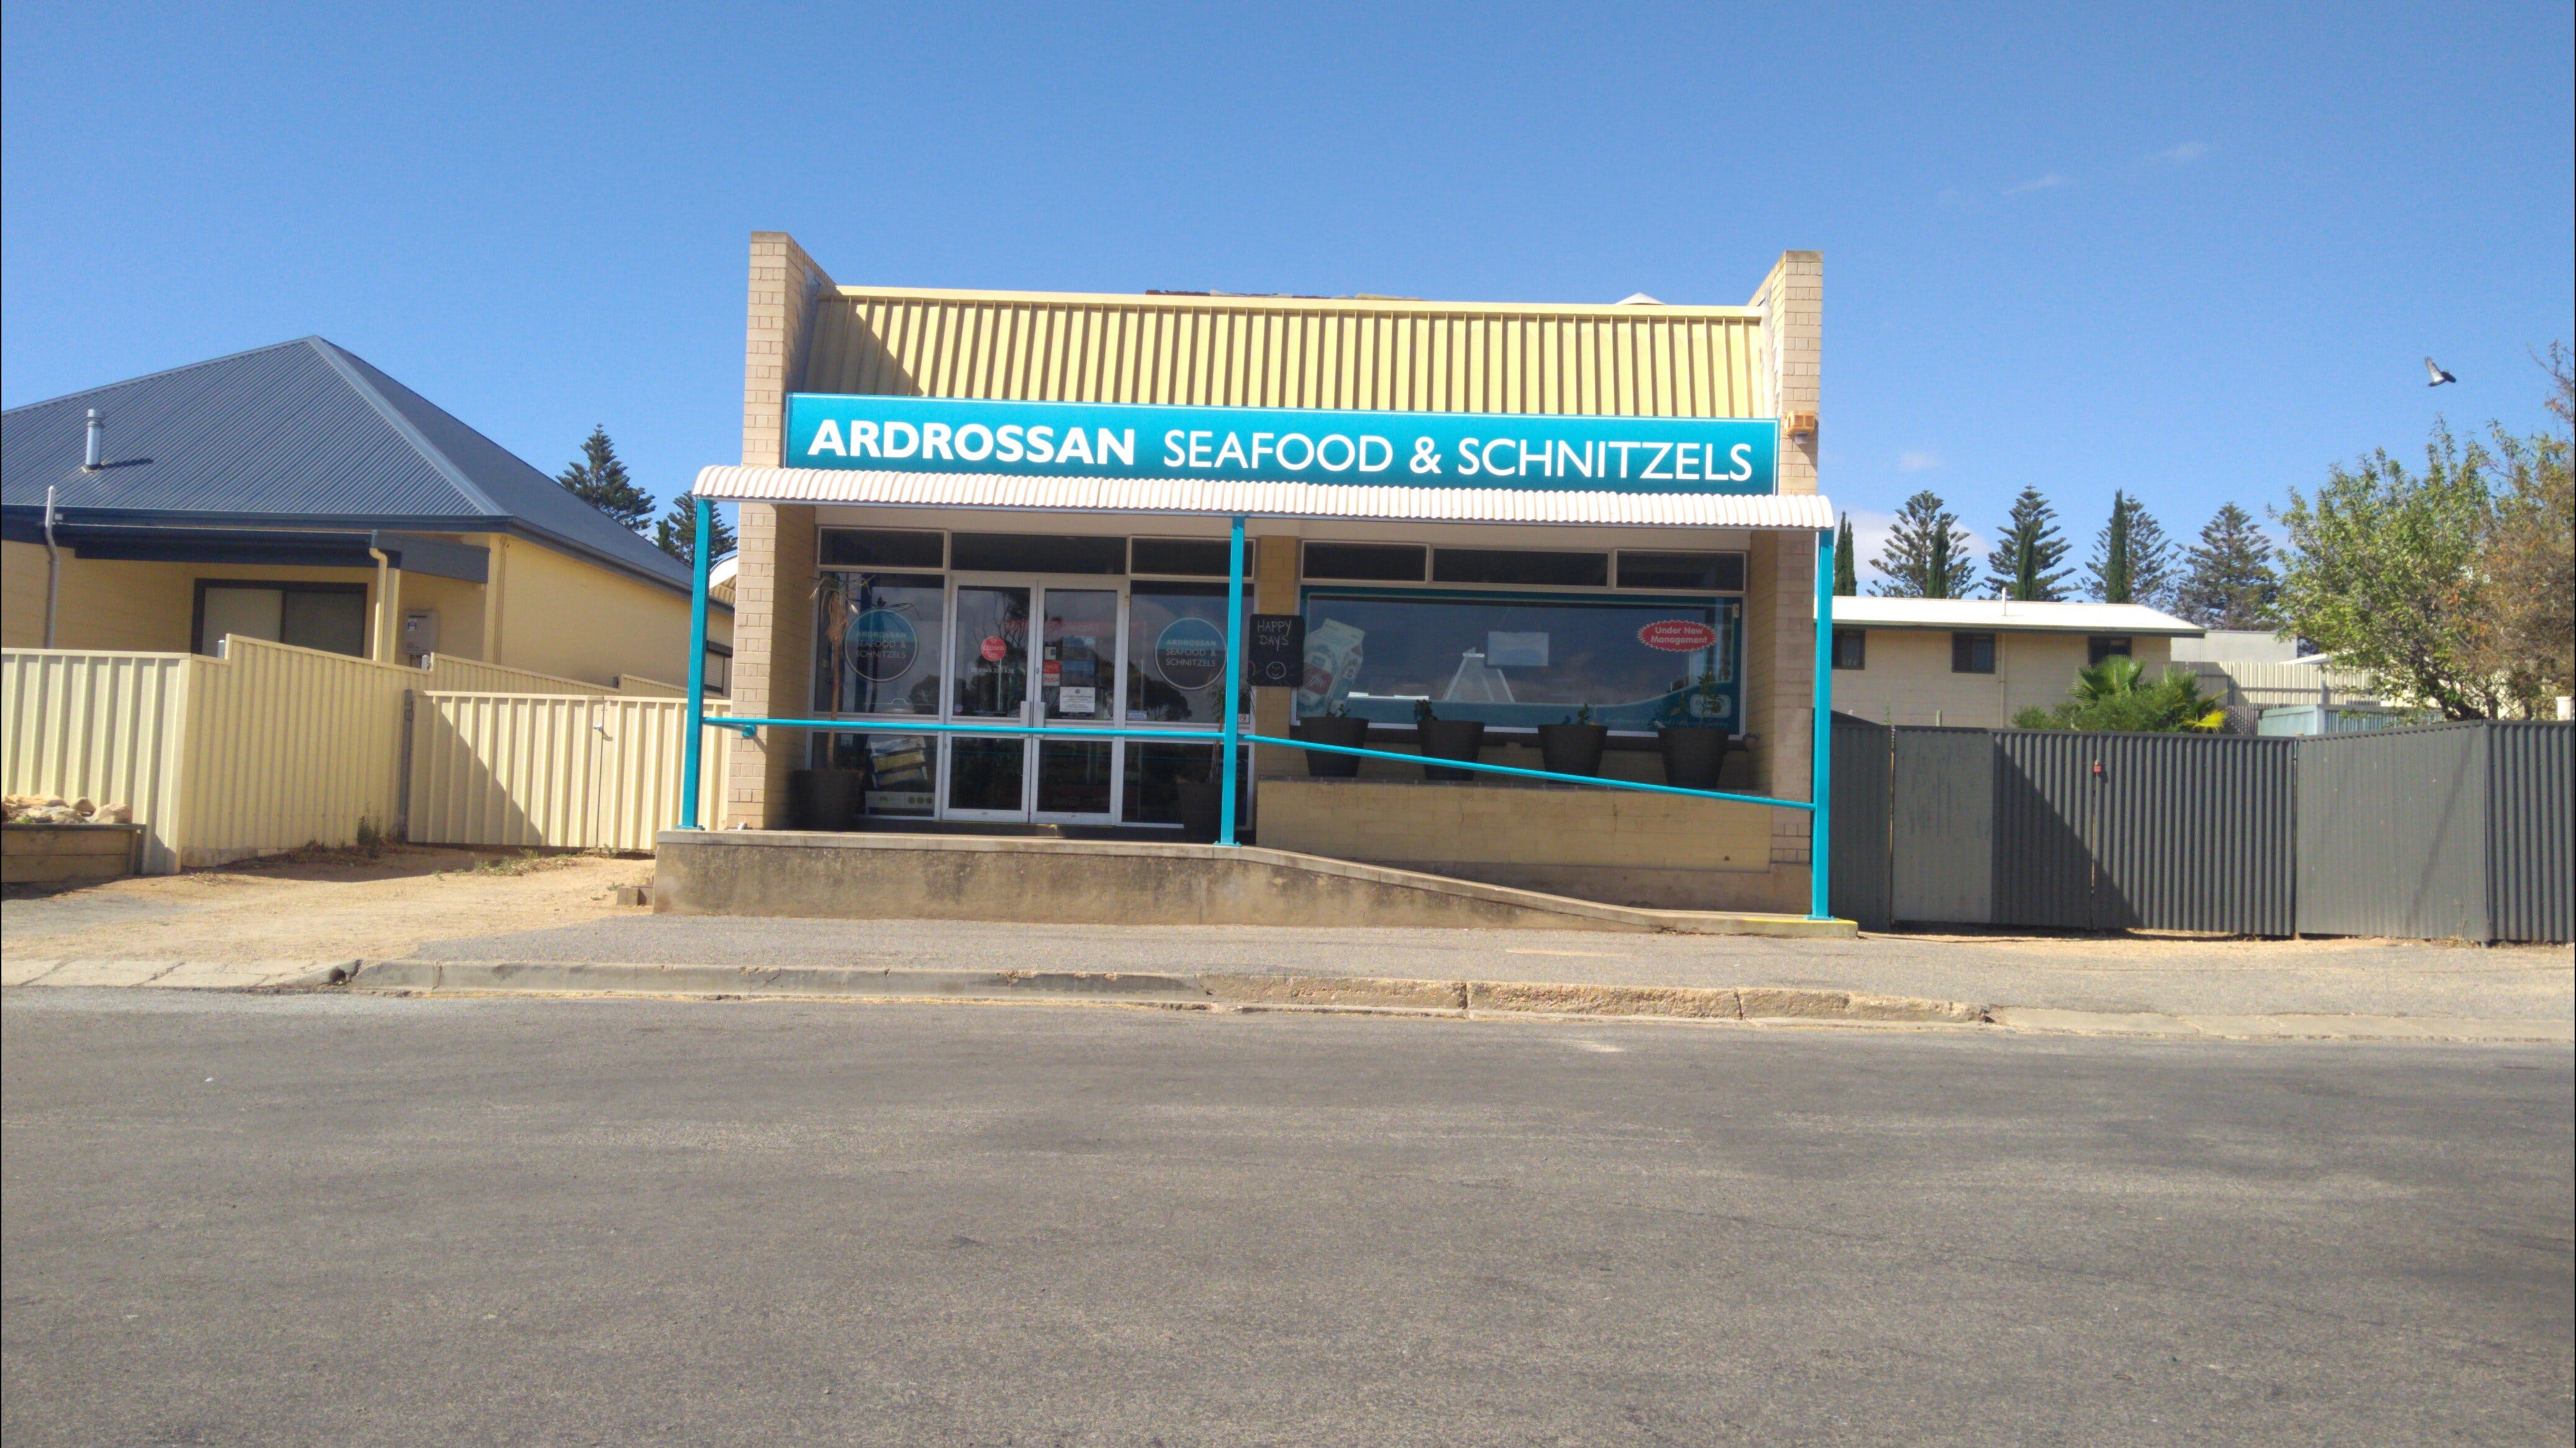 Ardrossan Seafood and Schnitzels - South Australia Travel